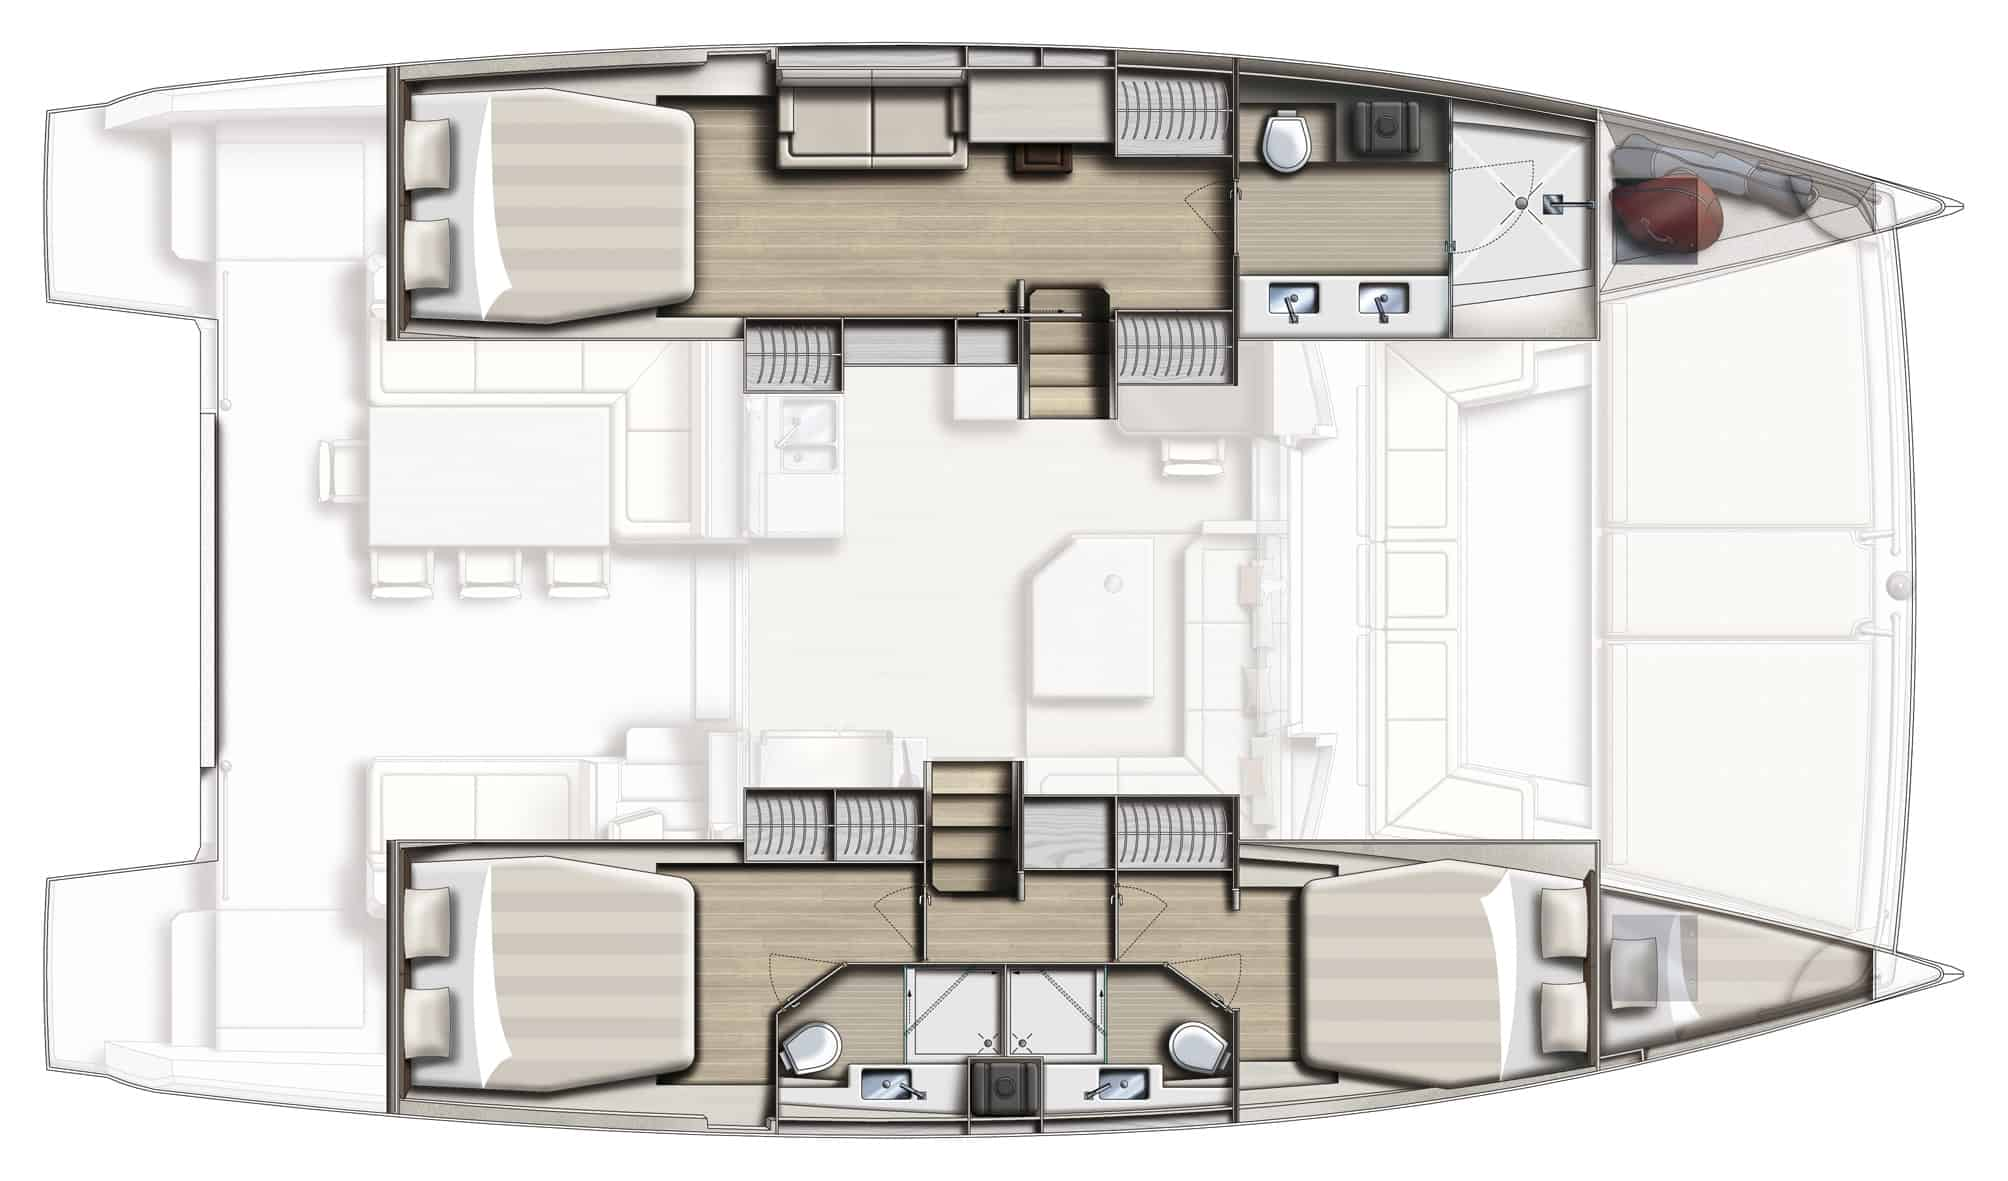 bali 4.5 with 3 cabin configuration